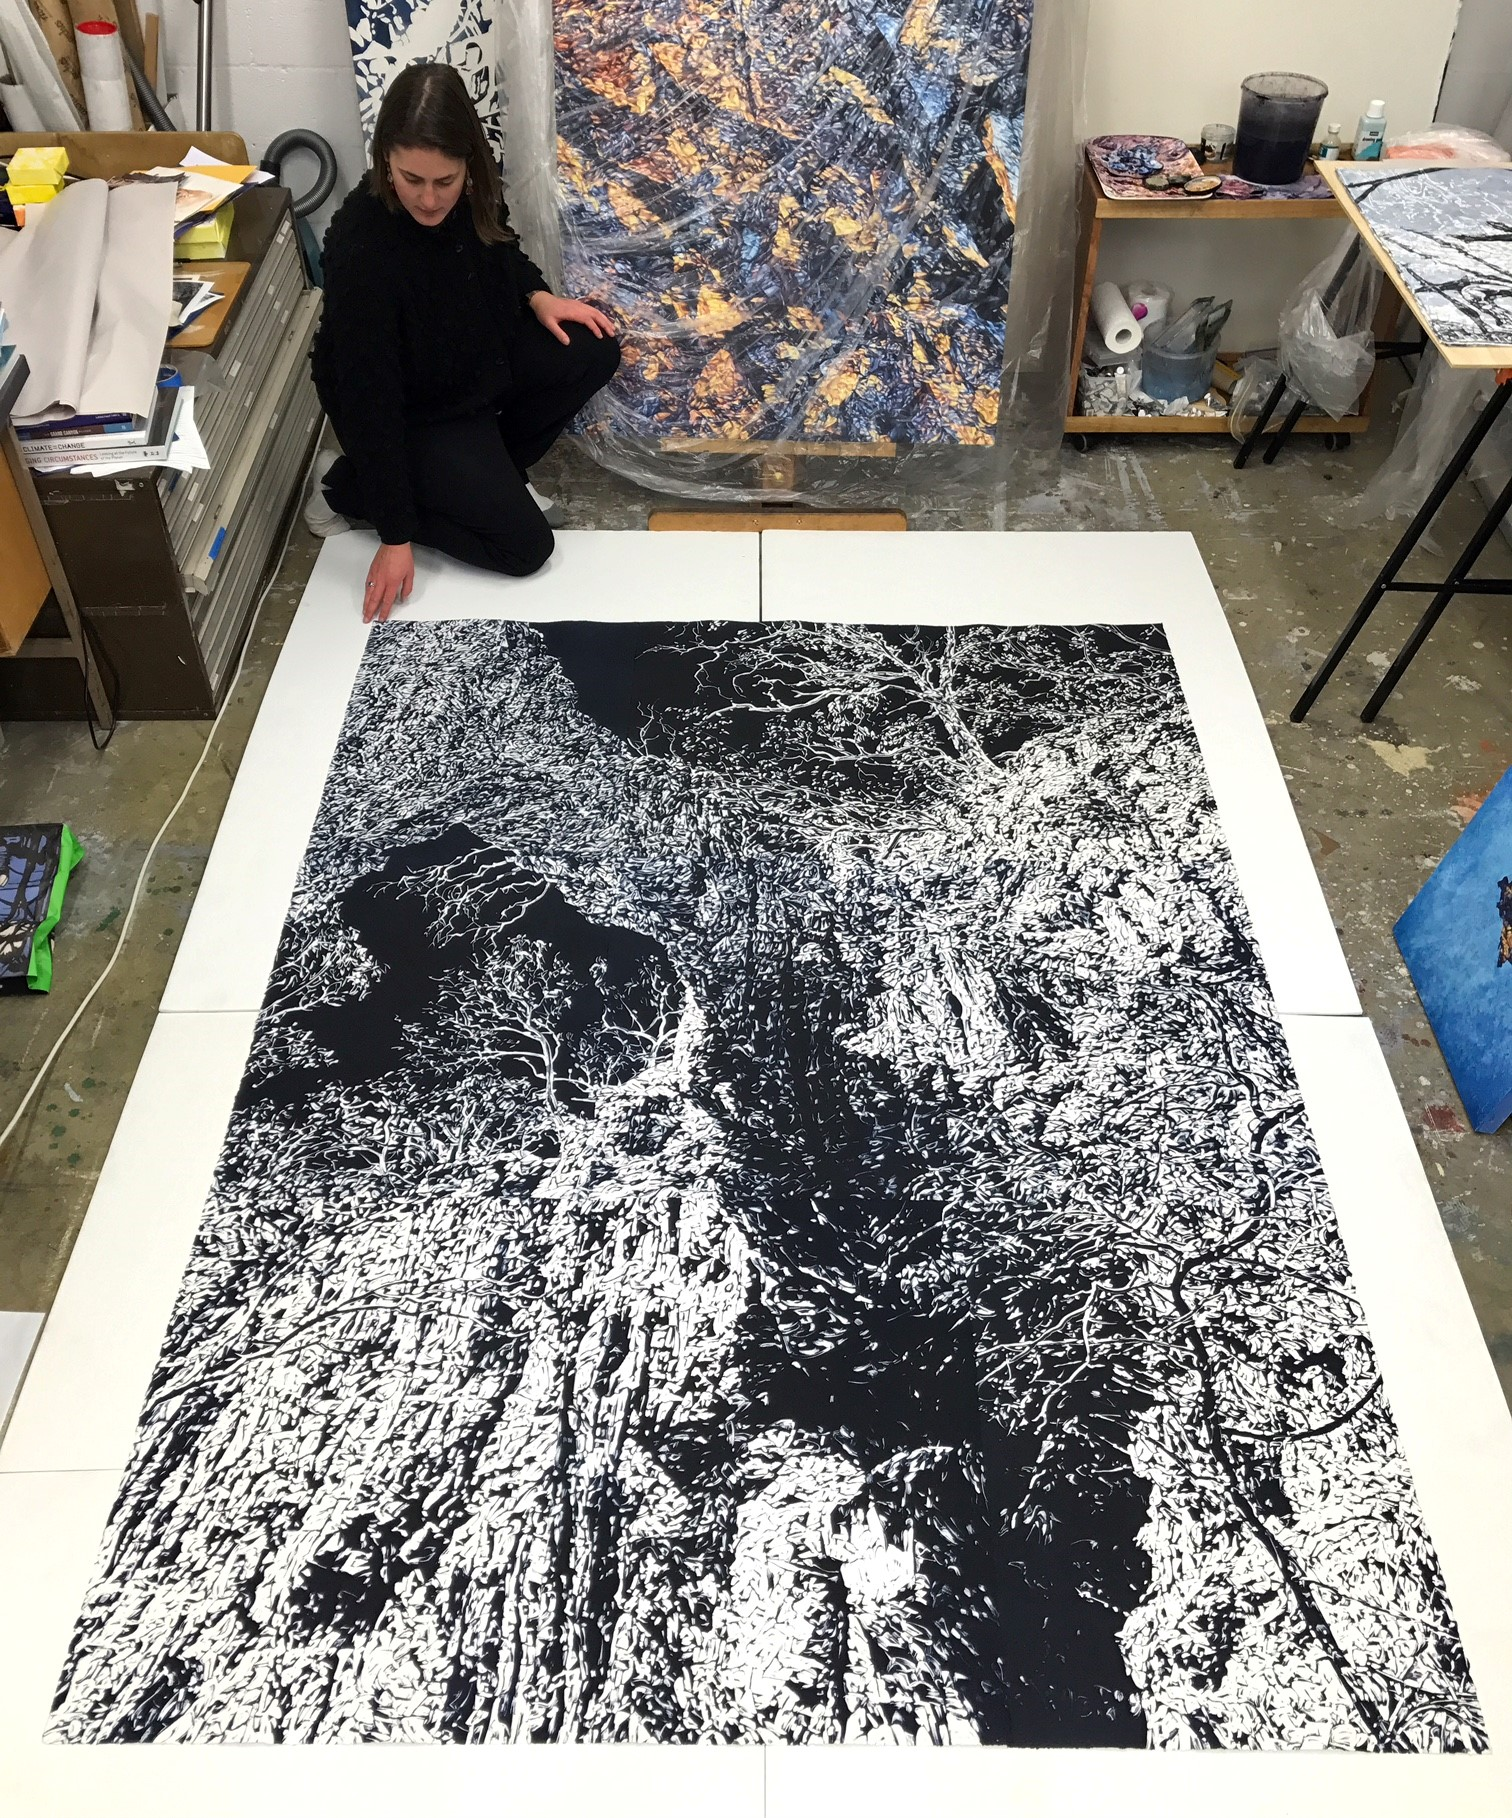 Annika Romeyn in her ANCA Dickson studio with her monotype work 'Chasm 3', 2017